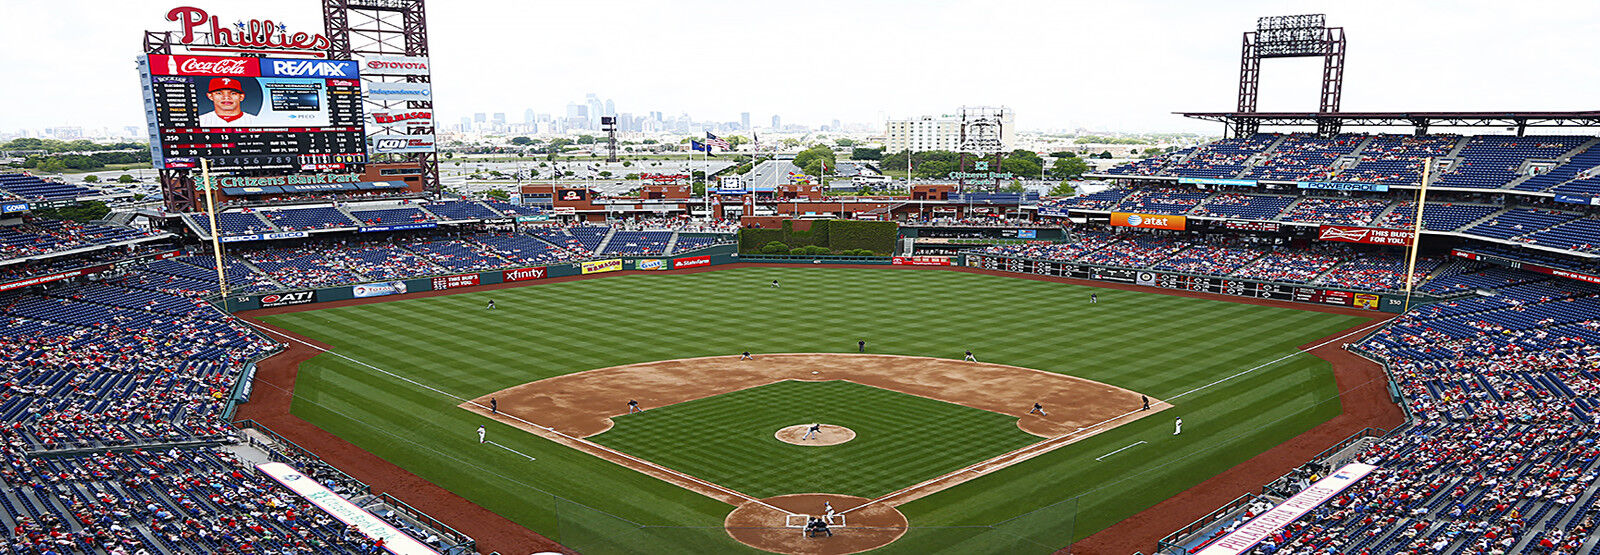 Washington Nationals at Philadelphia Phillies